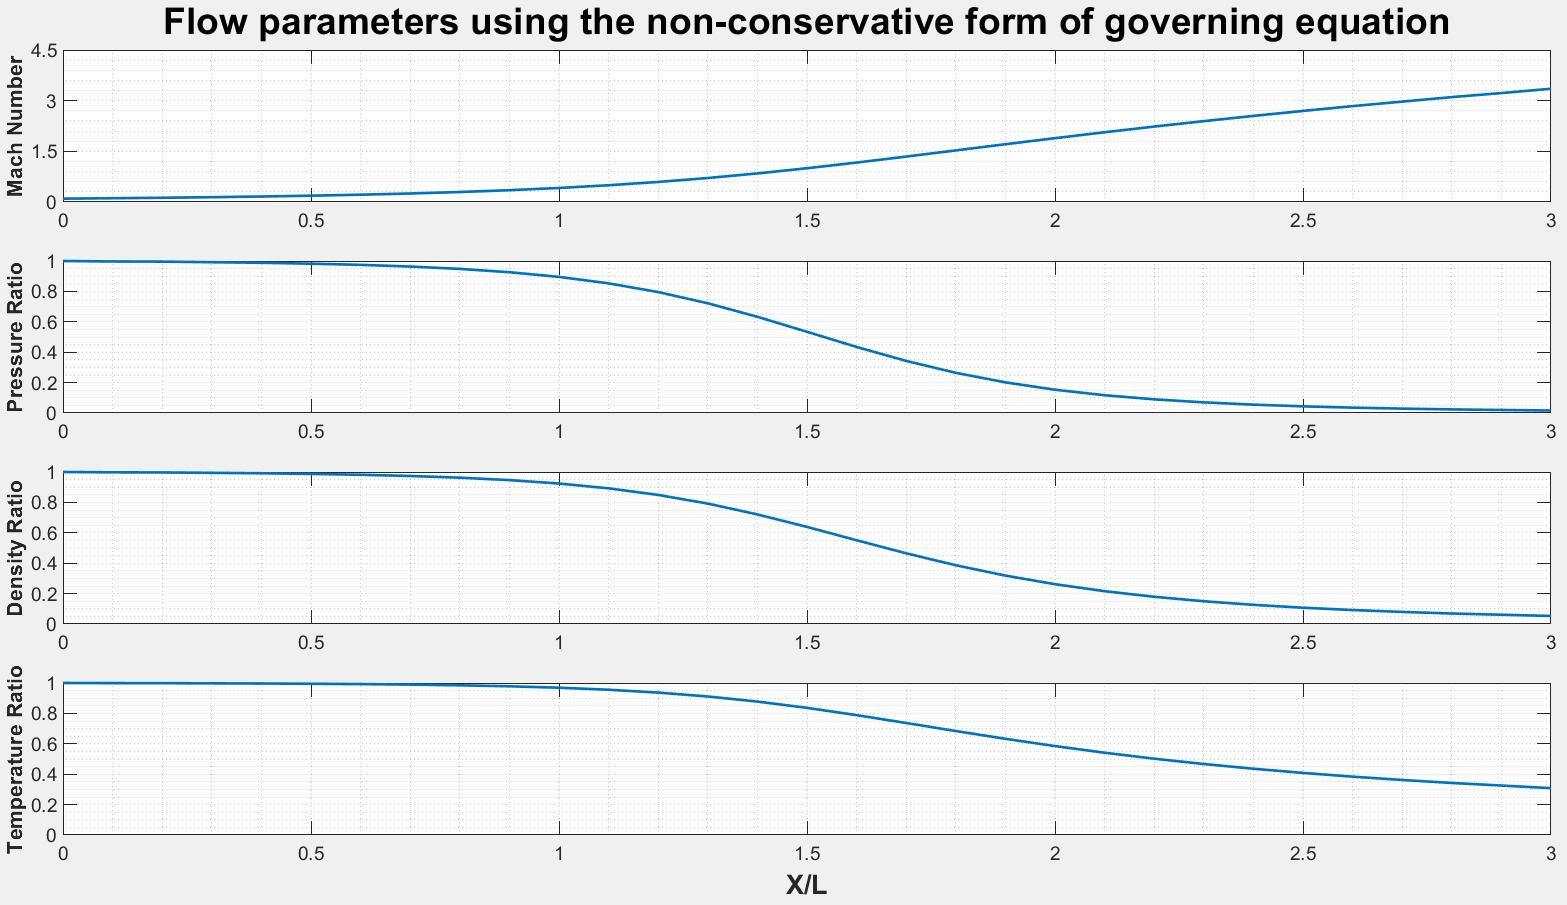 Solving the conservative and non-conservative form of the